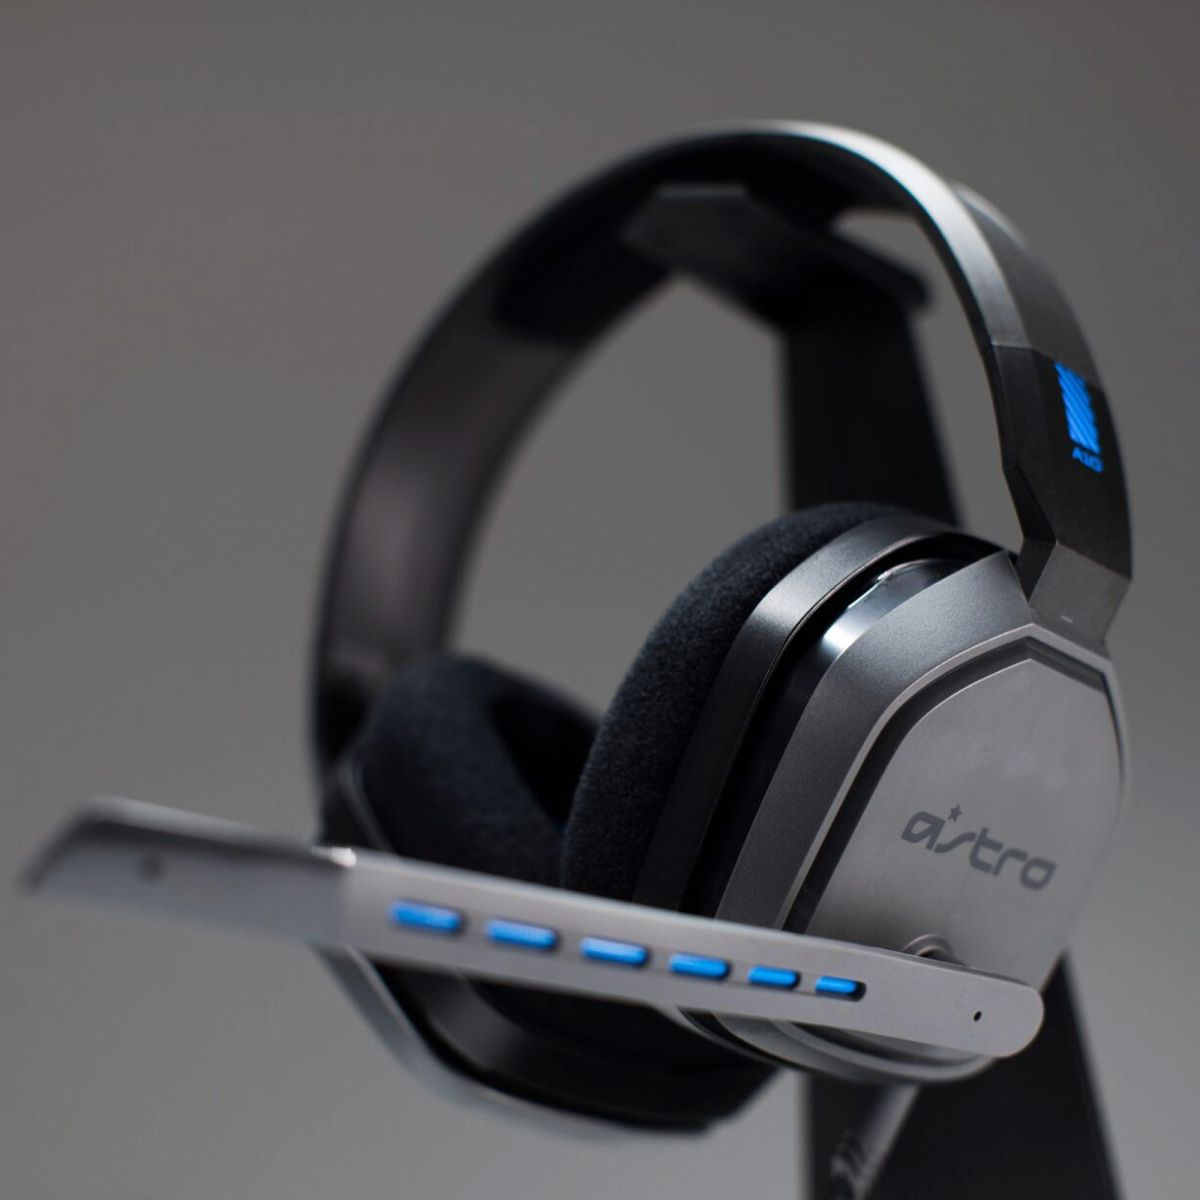 Astro A10 Review: A Great, Cheap Gaming Headset | Tom's Guide